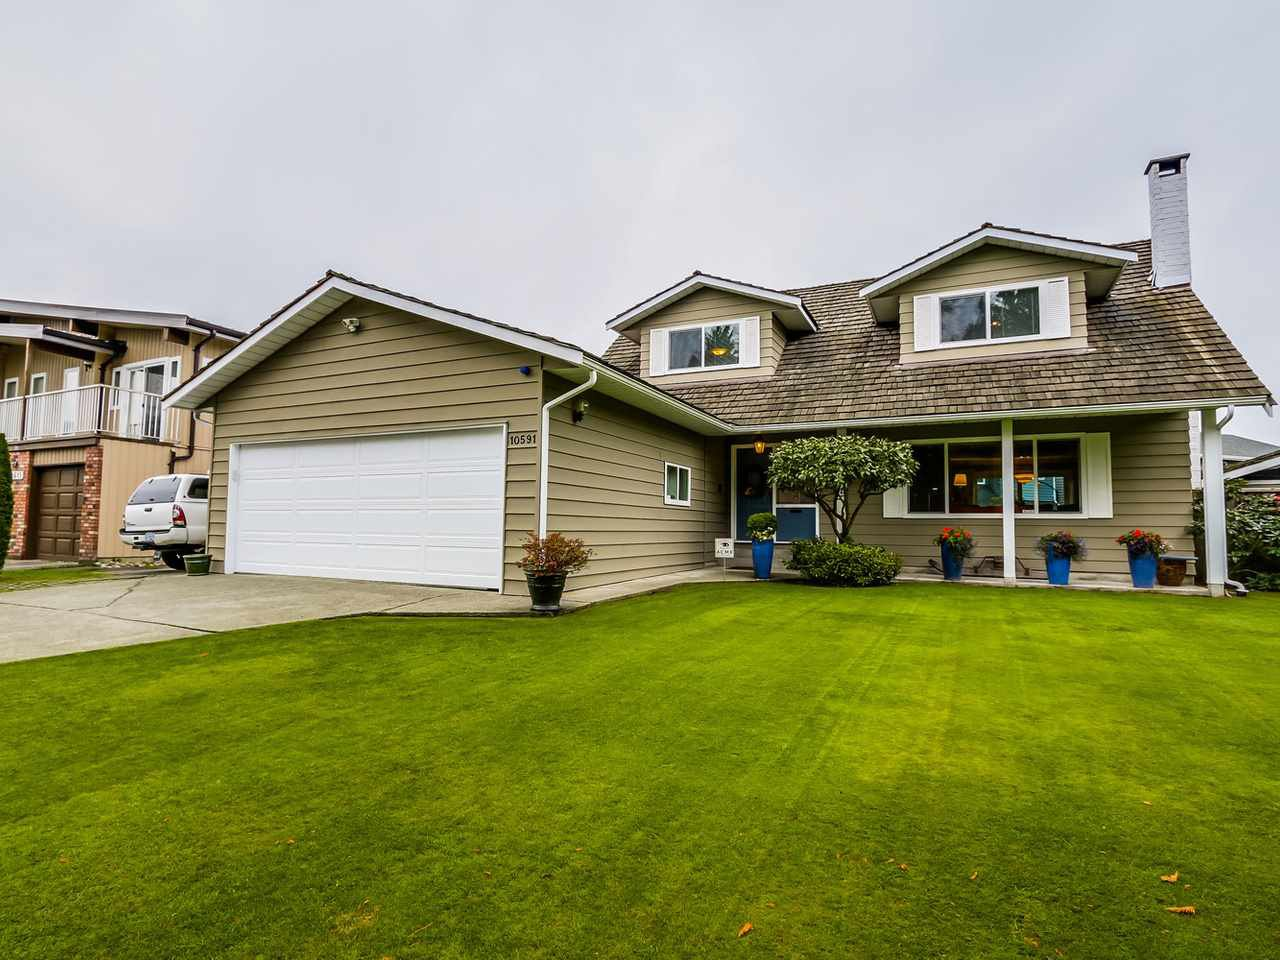 Main Photo: 10591 TREPASSEY DRIVE: Steveston North Home for sale ()  : MLS®# R2012787